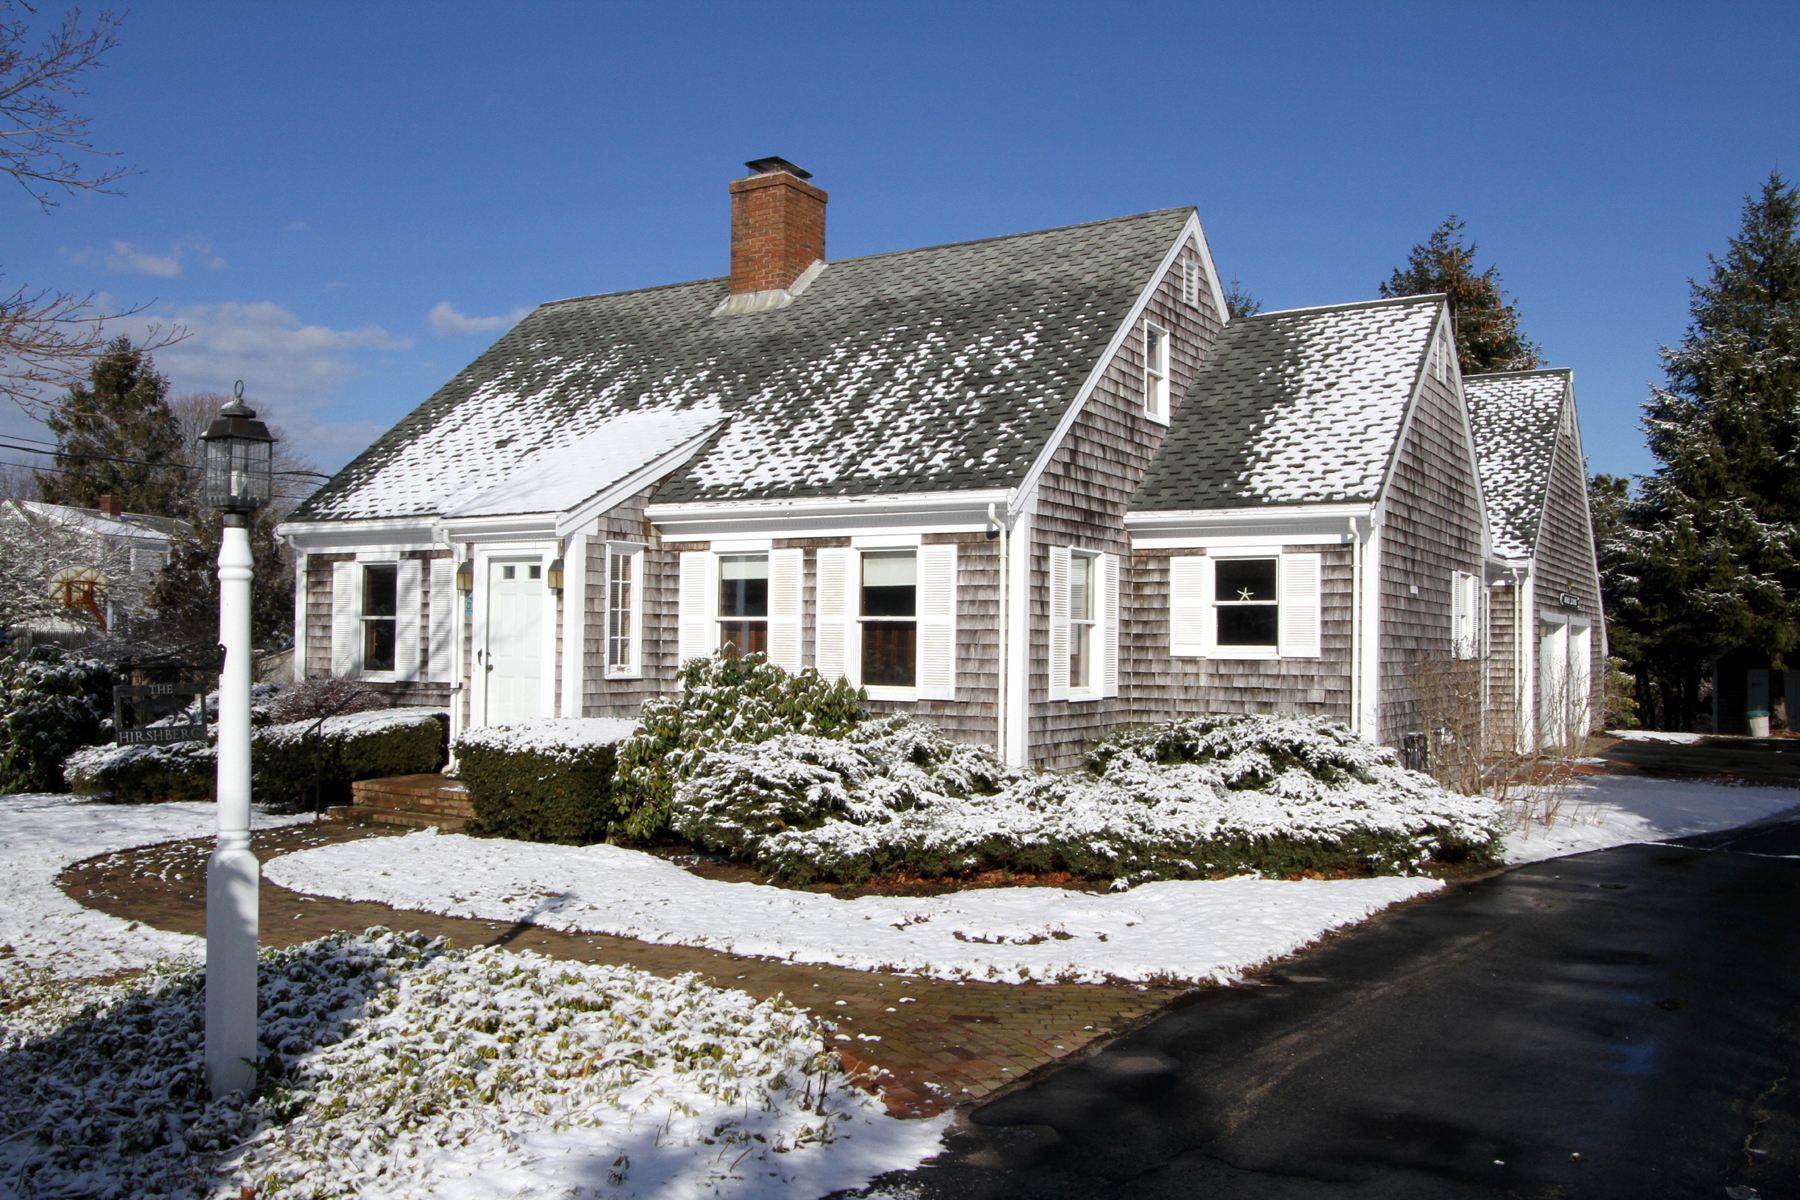 Property For Sale at 6 Sunrise Lane, Harwich, MA